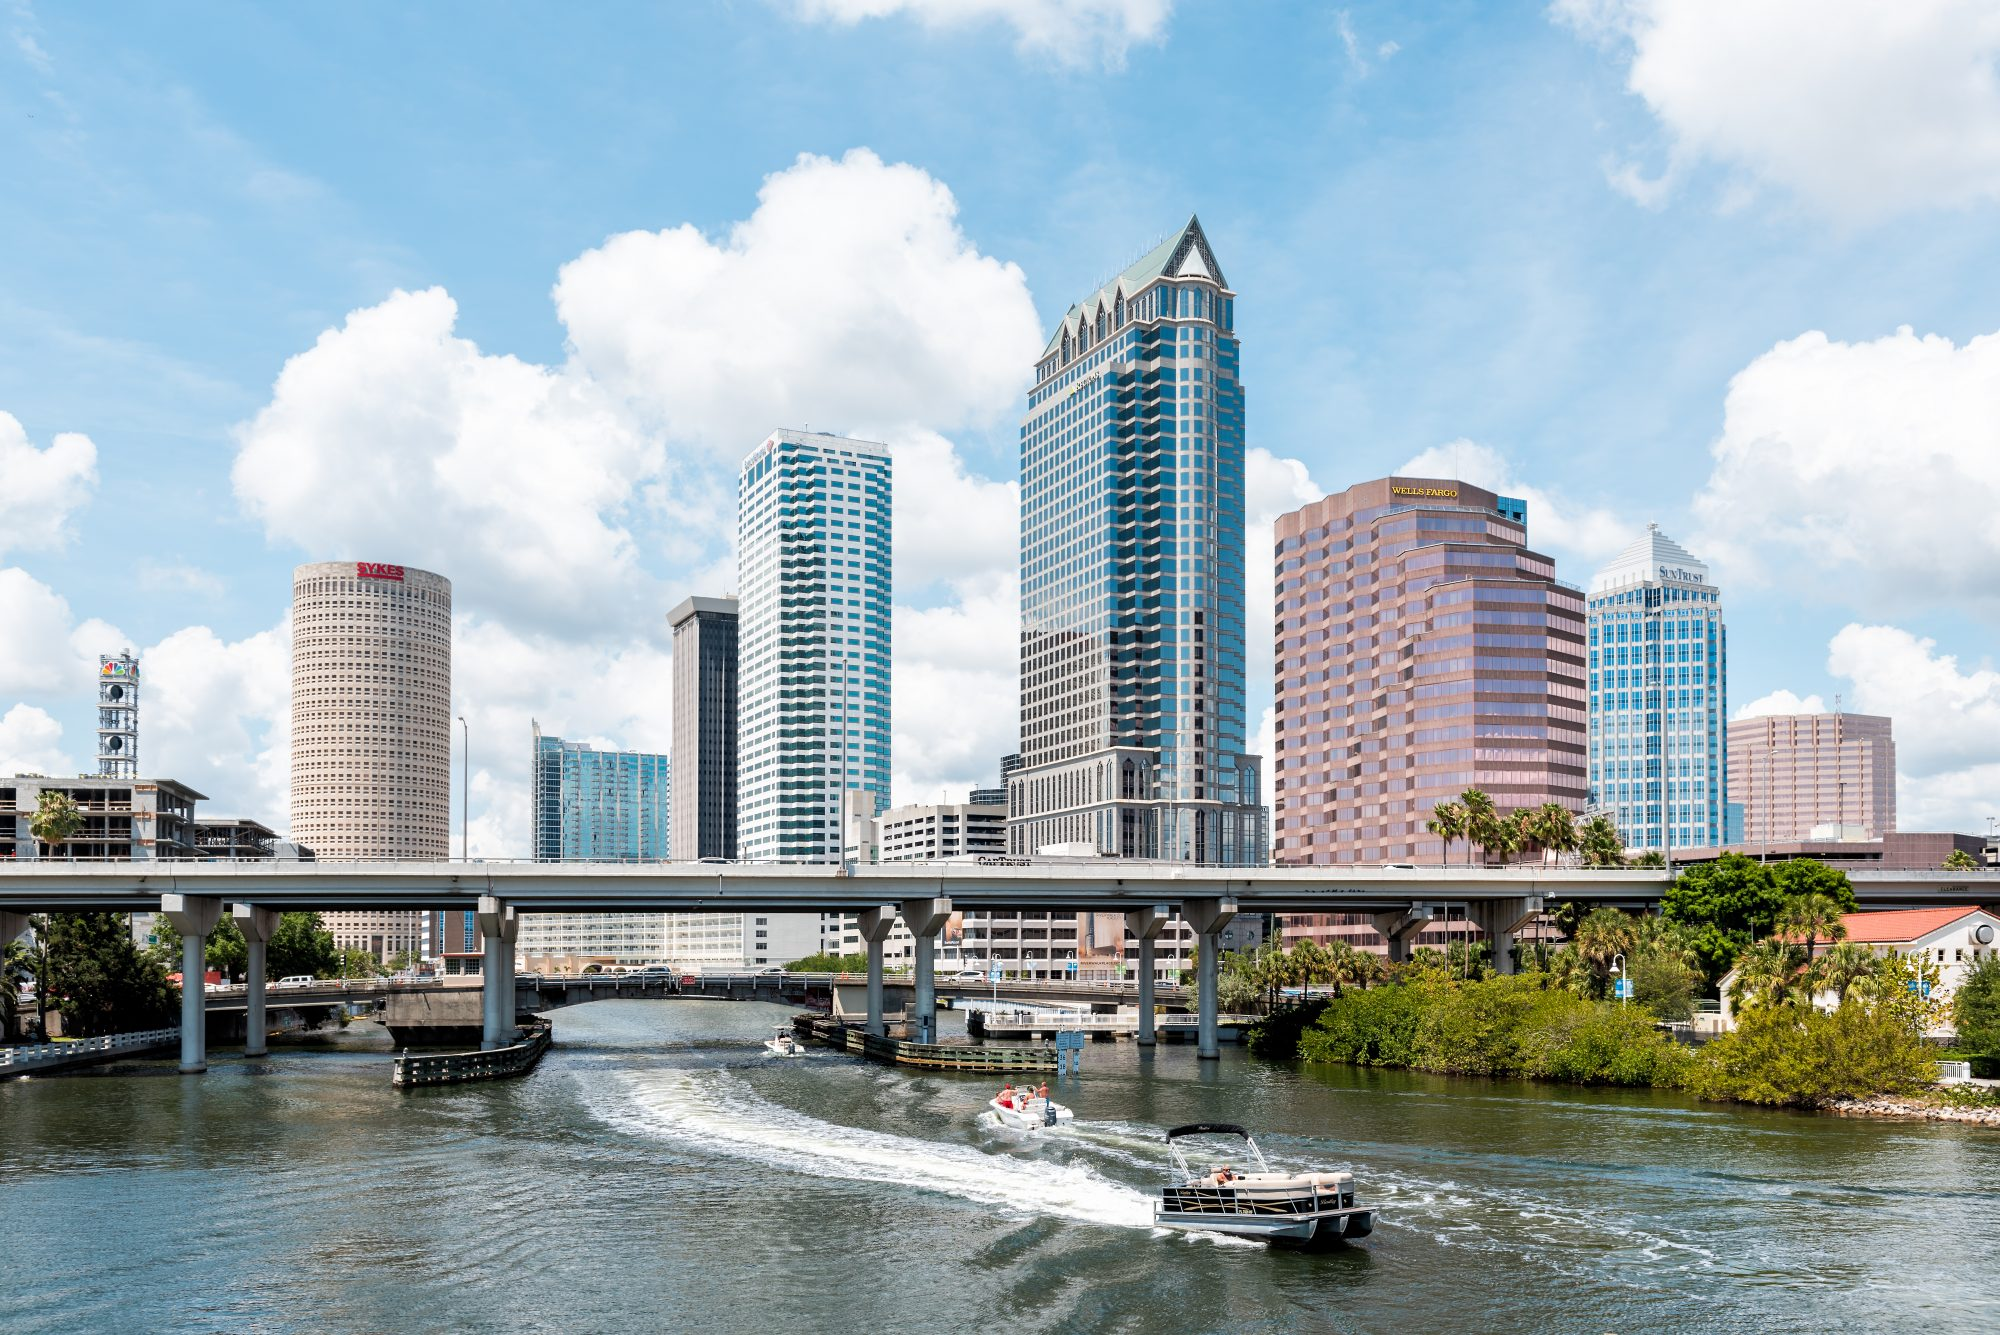 Tampa, USA - April 27, 2018: Downtown city in Florida with bridges, highway, boat yacht, skyscrapers office modern buildings cityscape with signs for Wells Fargo, NBC, Sykes